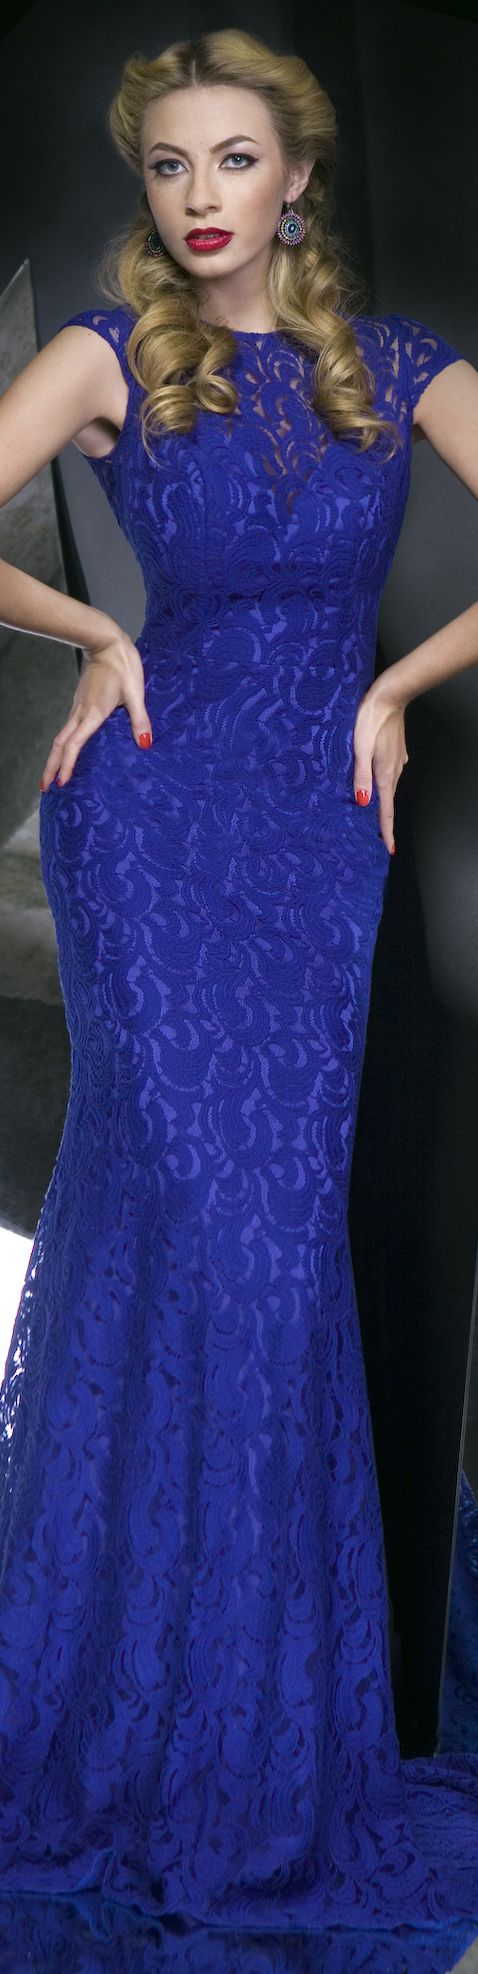 IN THE MOOD FOR GLAM Collection: IN THE MOOD  Rochie de seara design #large #elegant #dress